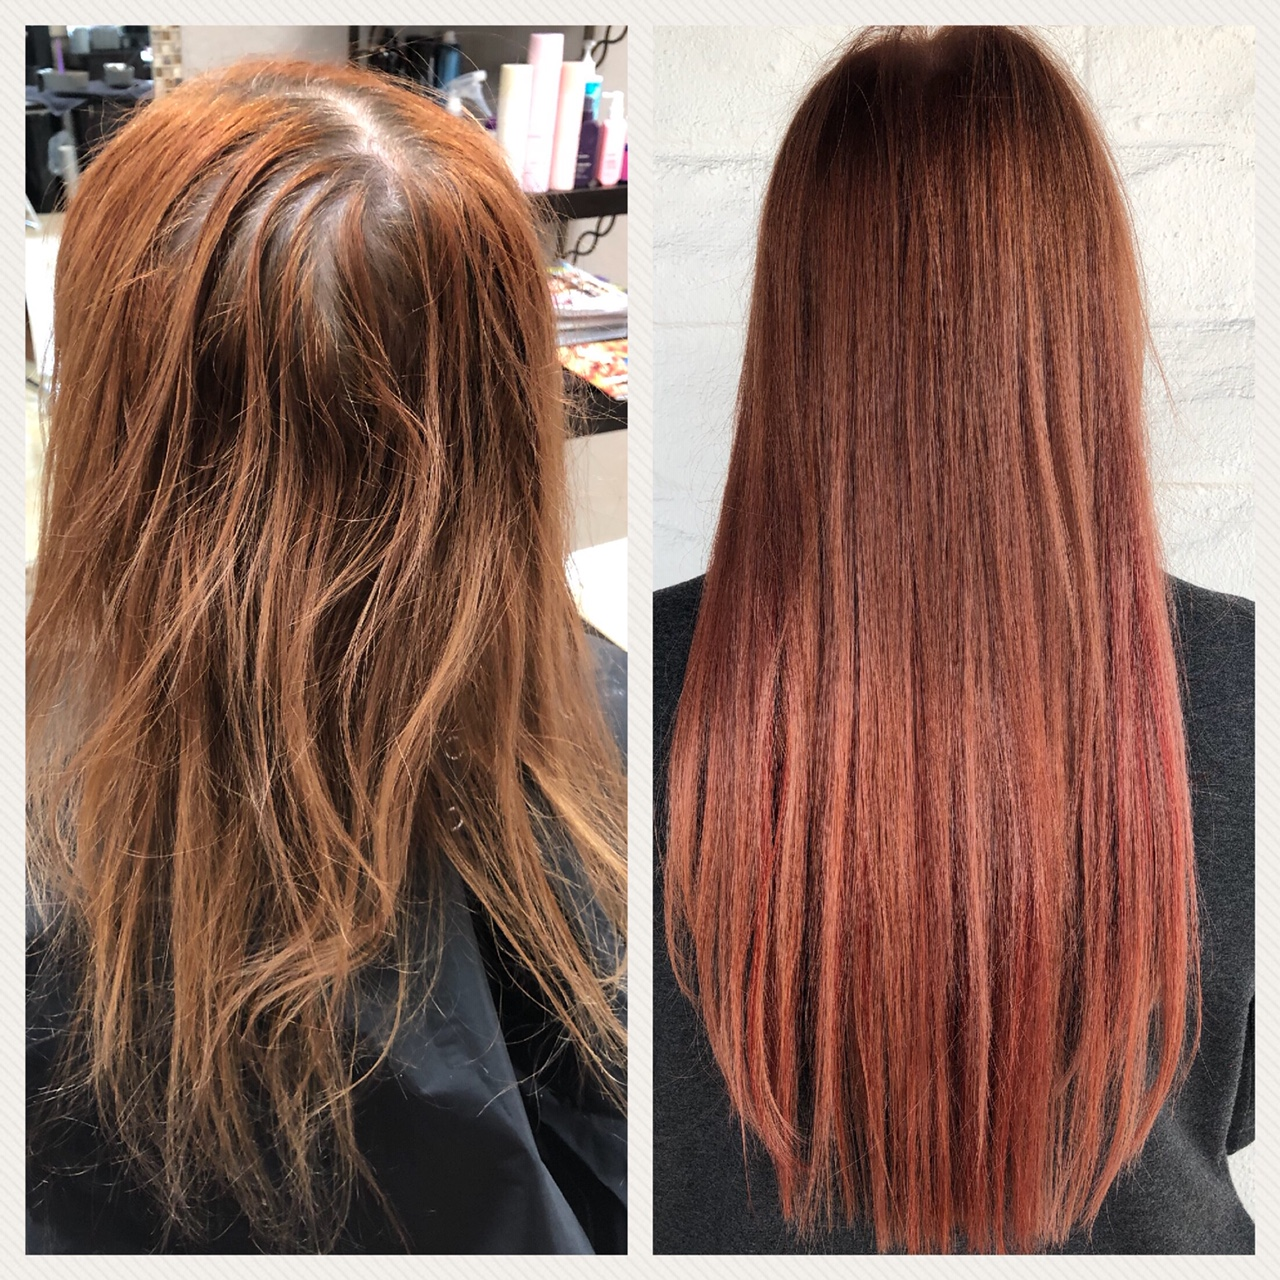 Before and After image of long auburn straight hair extensions-hair salon solana beach -Salon LG-+1 858 344 7865.